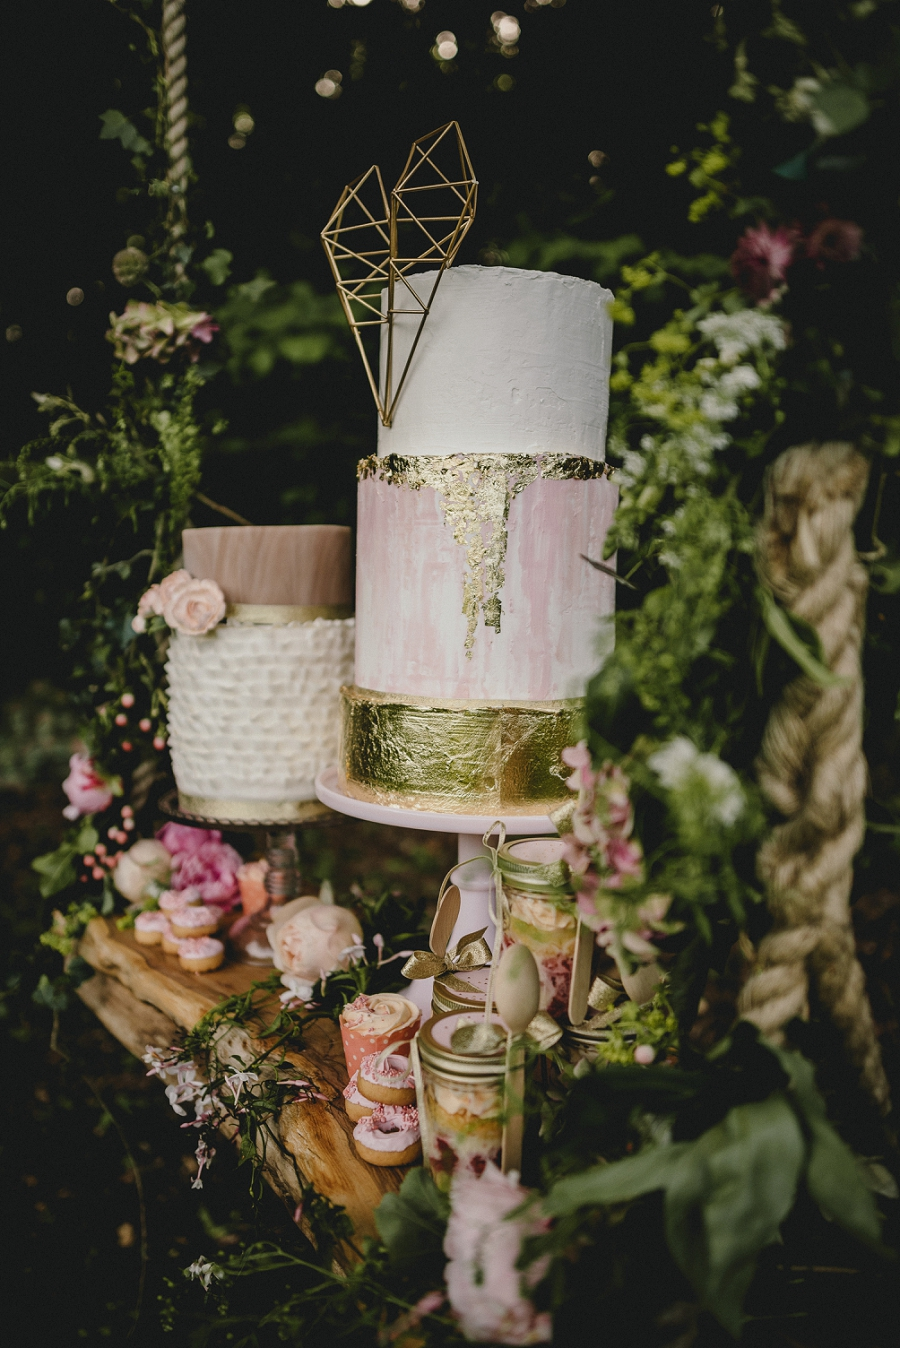 Heirloom wedding inspiration with Emily Andrews Events at Thurning Hall. Photo credit Benjamin Mathers Photography (32)